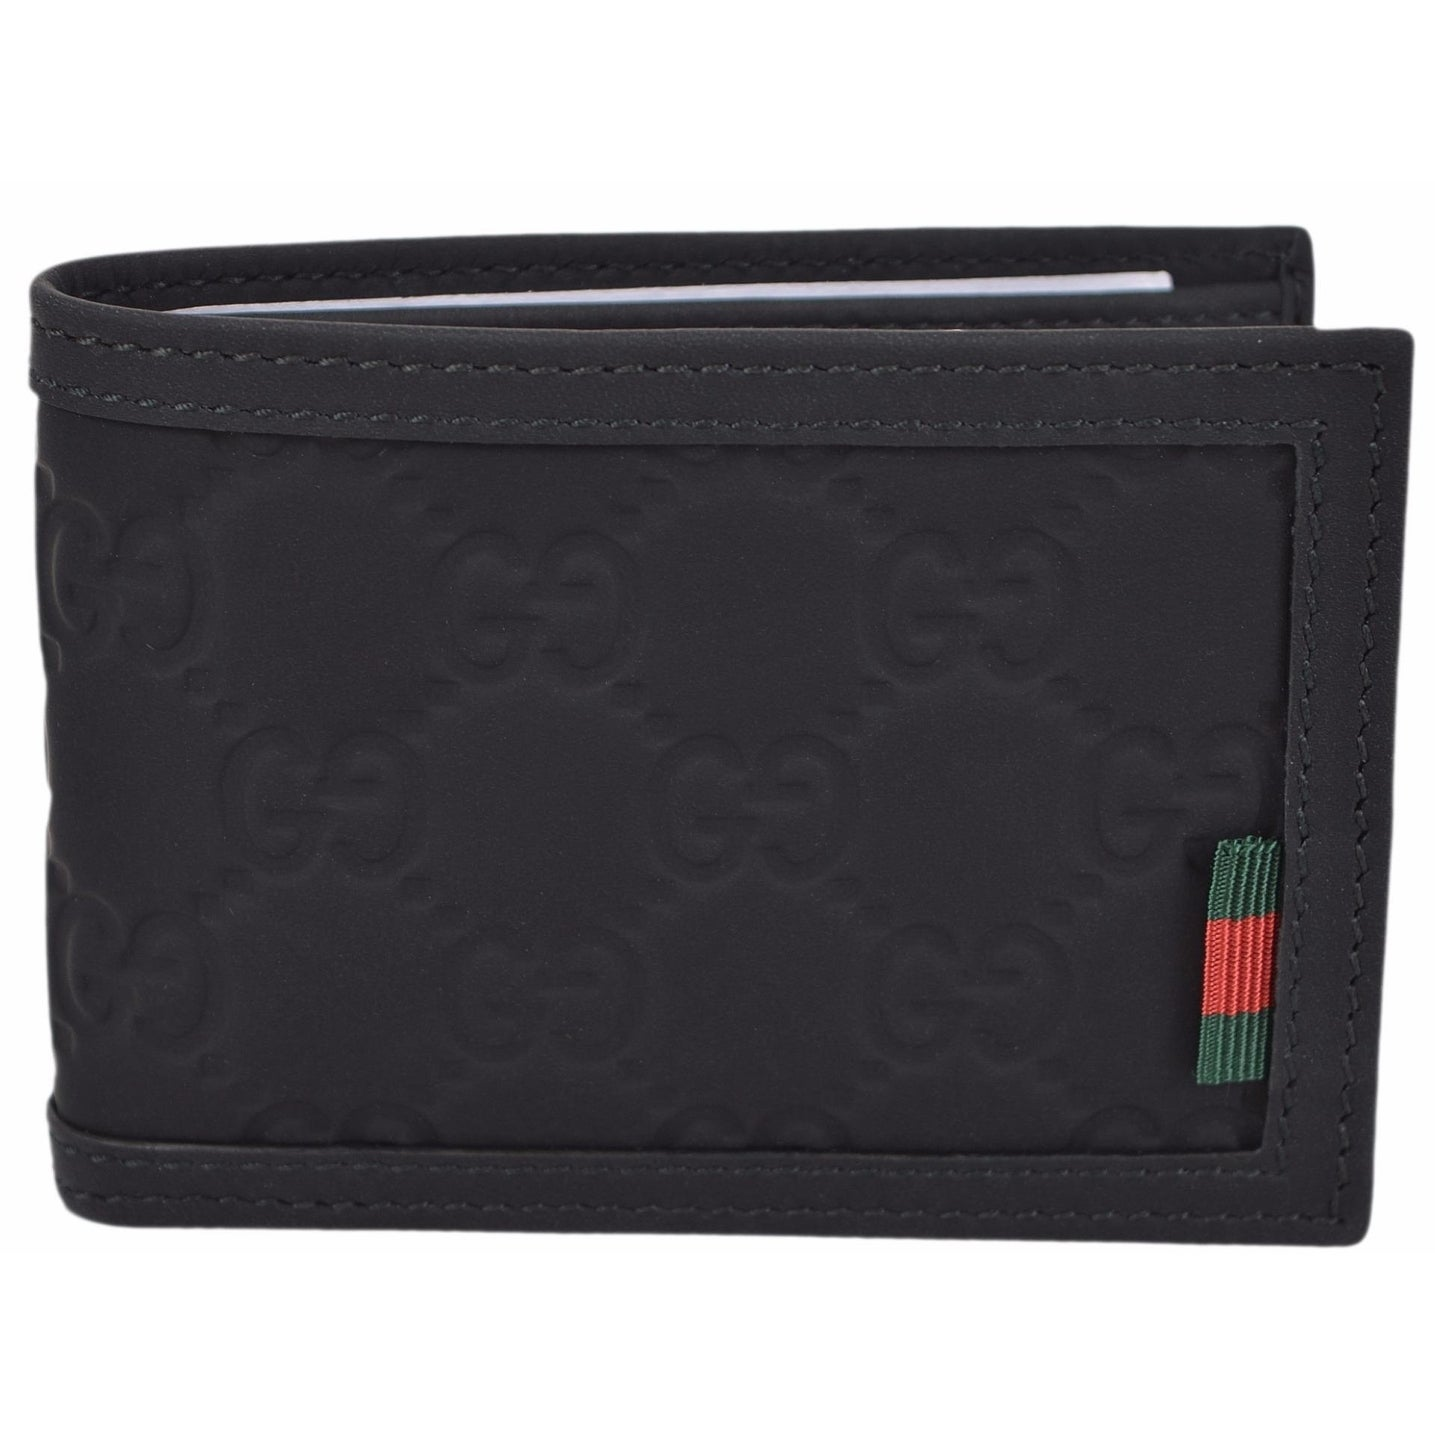 f5cff8868 Shop Gucci Men s 233157 Black Neoprene Red Green Web Mini GG Guccissima  Wallet - Free Shipping Today - Overstock - 12855884